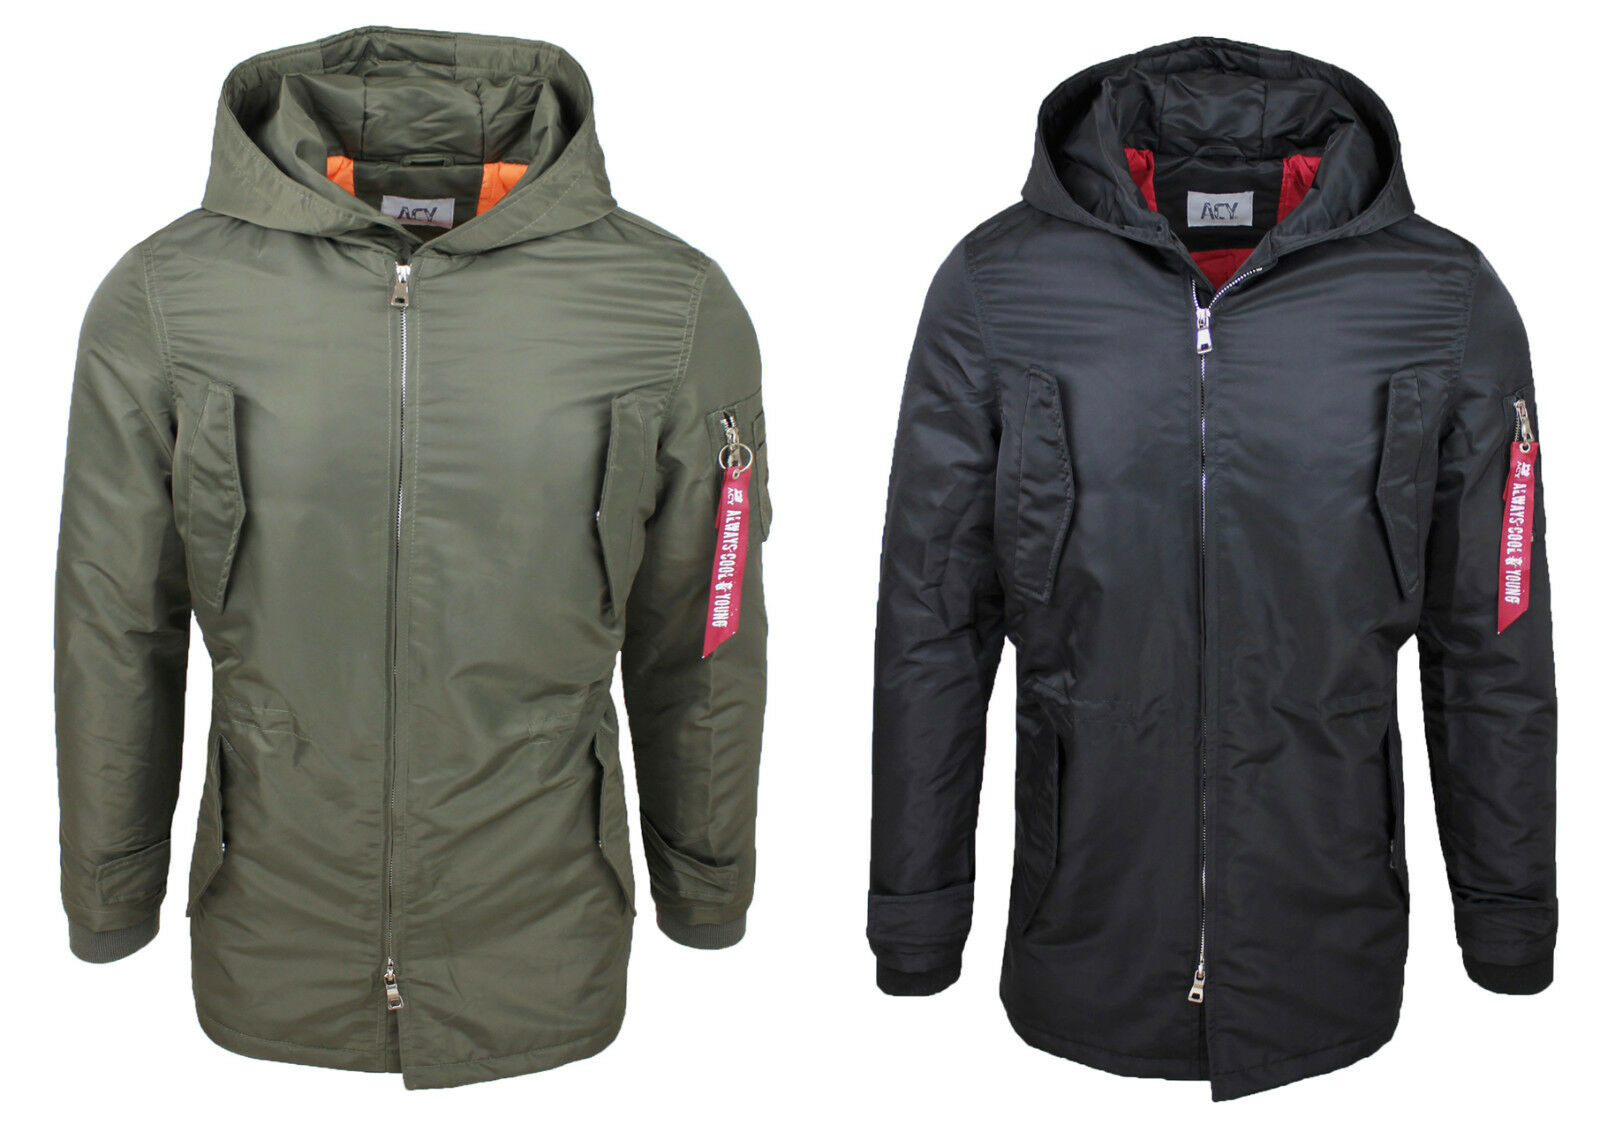 buy online 2eecd f85ef GIACCONE PARKA UOMO ACY STYLE VERDE NERO INVERNALE CASUAL ...